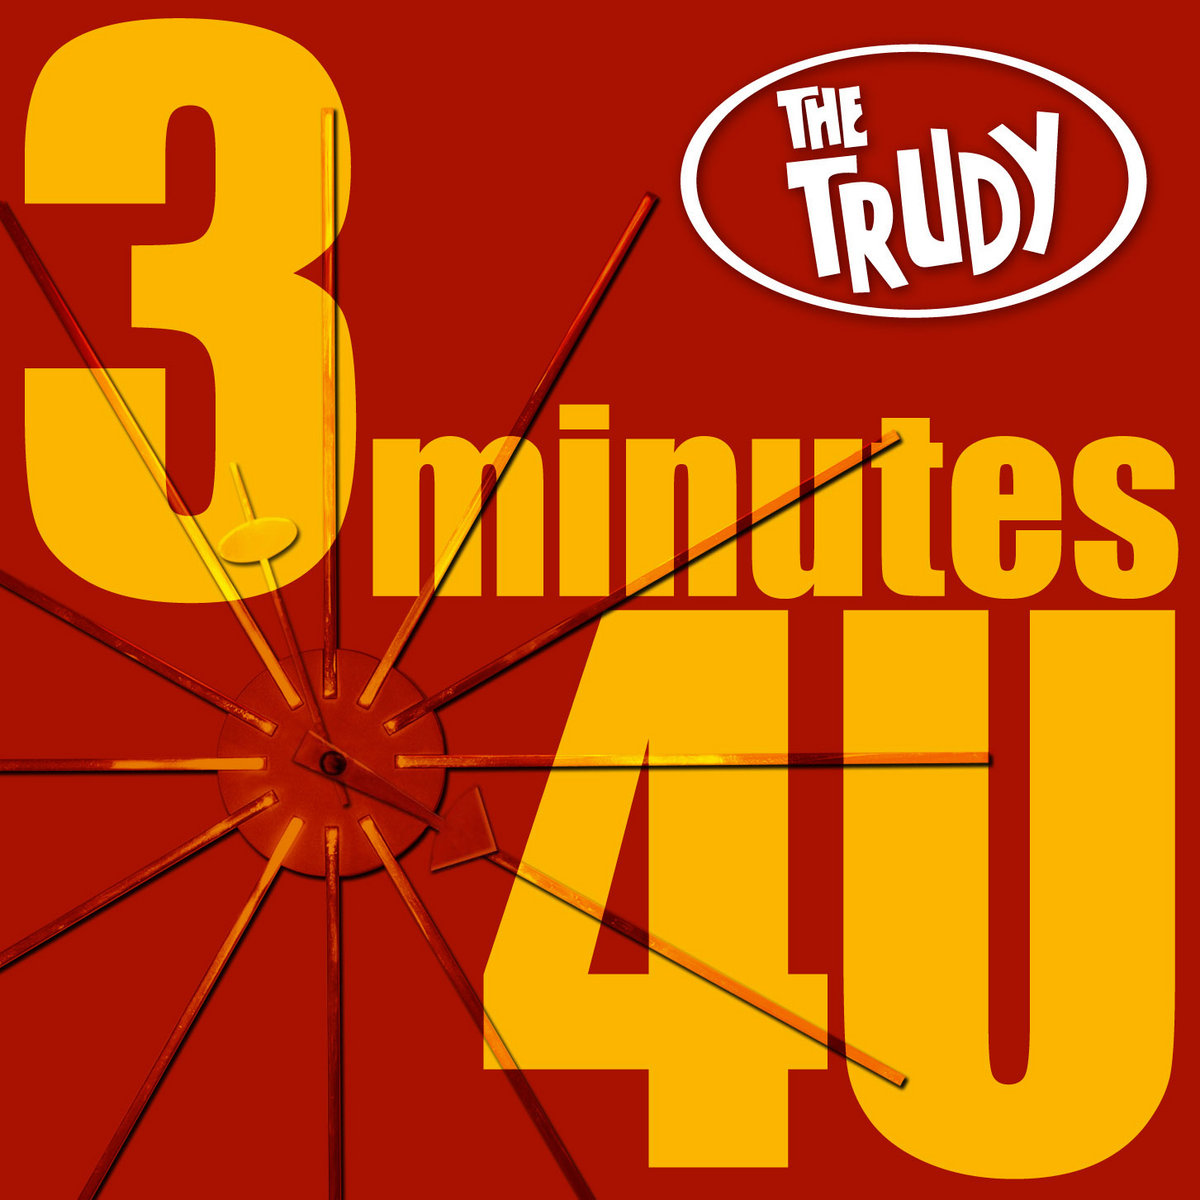 3 Minutes 4U by The Trudy